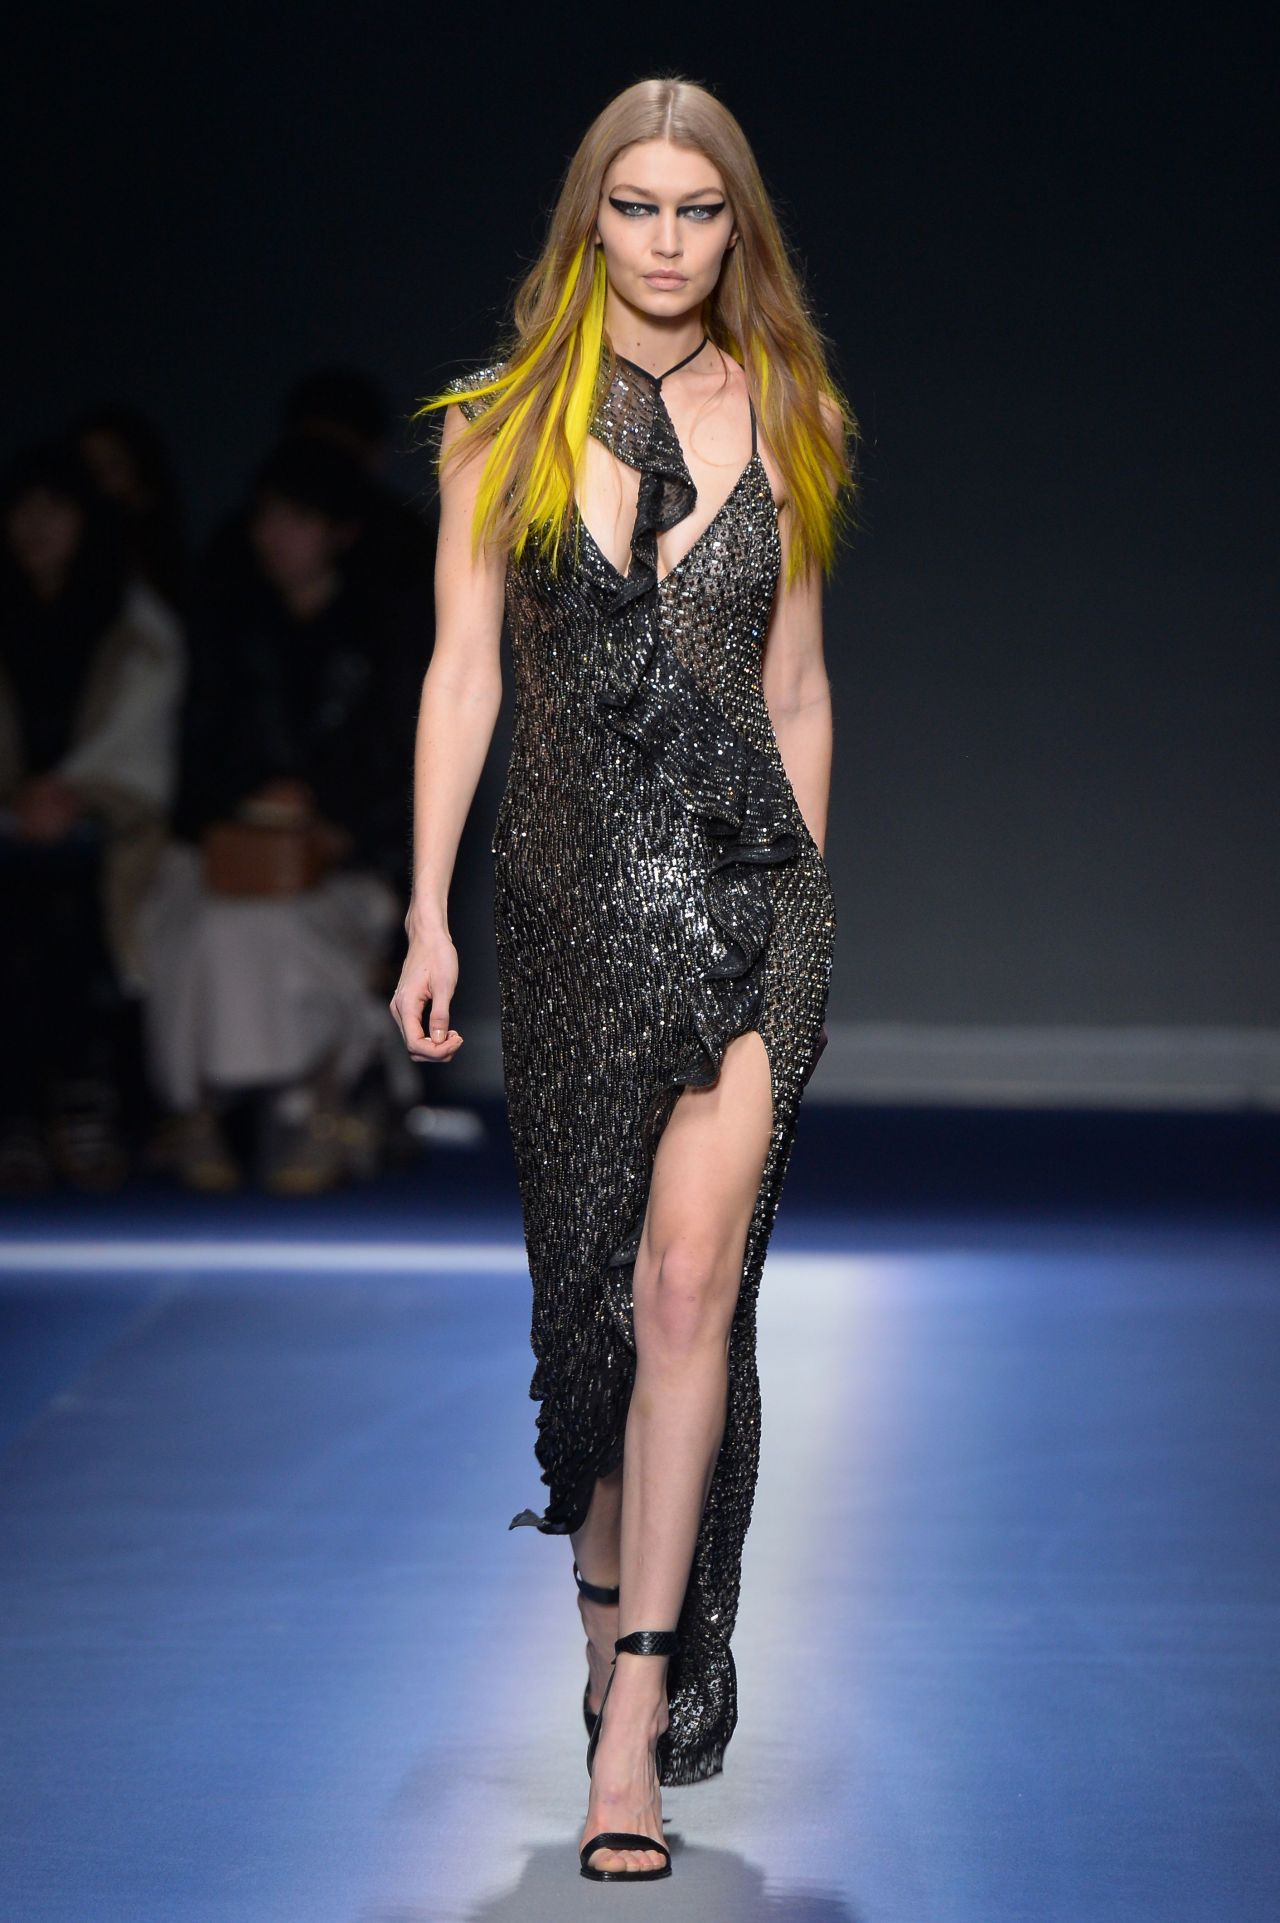 Gigi Hadid Supermodel Walks The Runway At The Versace Show